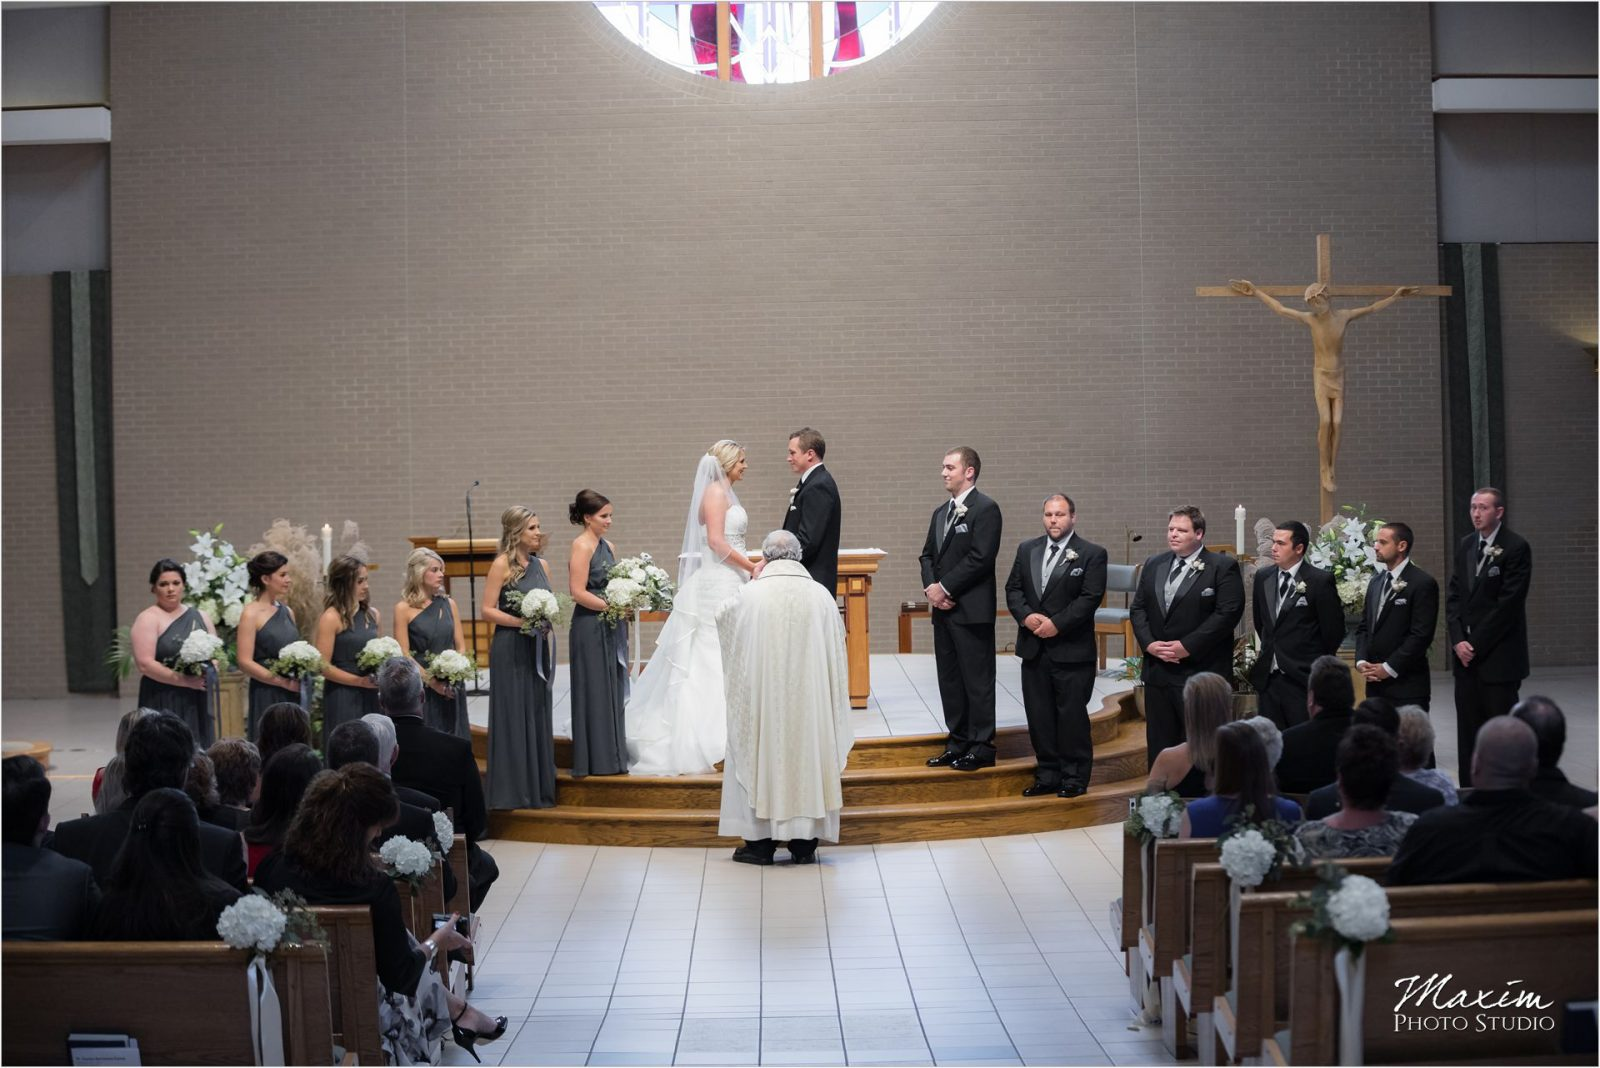 St Charles Borromeo Dayton Ohio wedding Ceremony